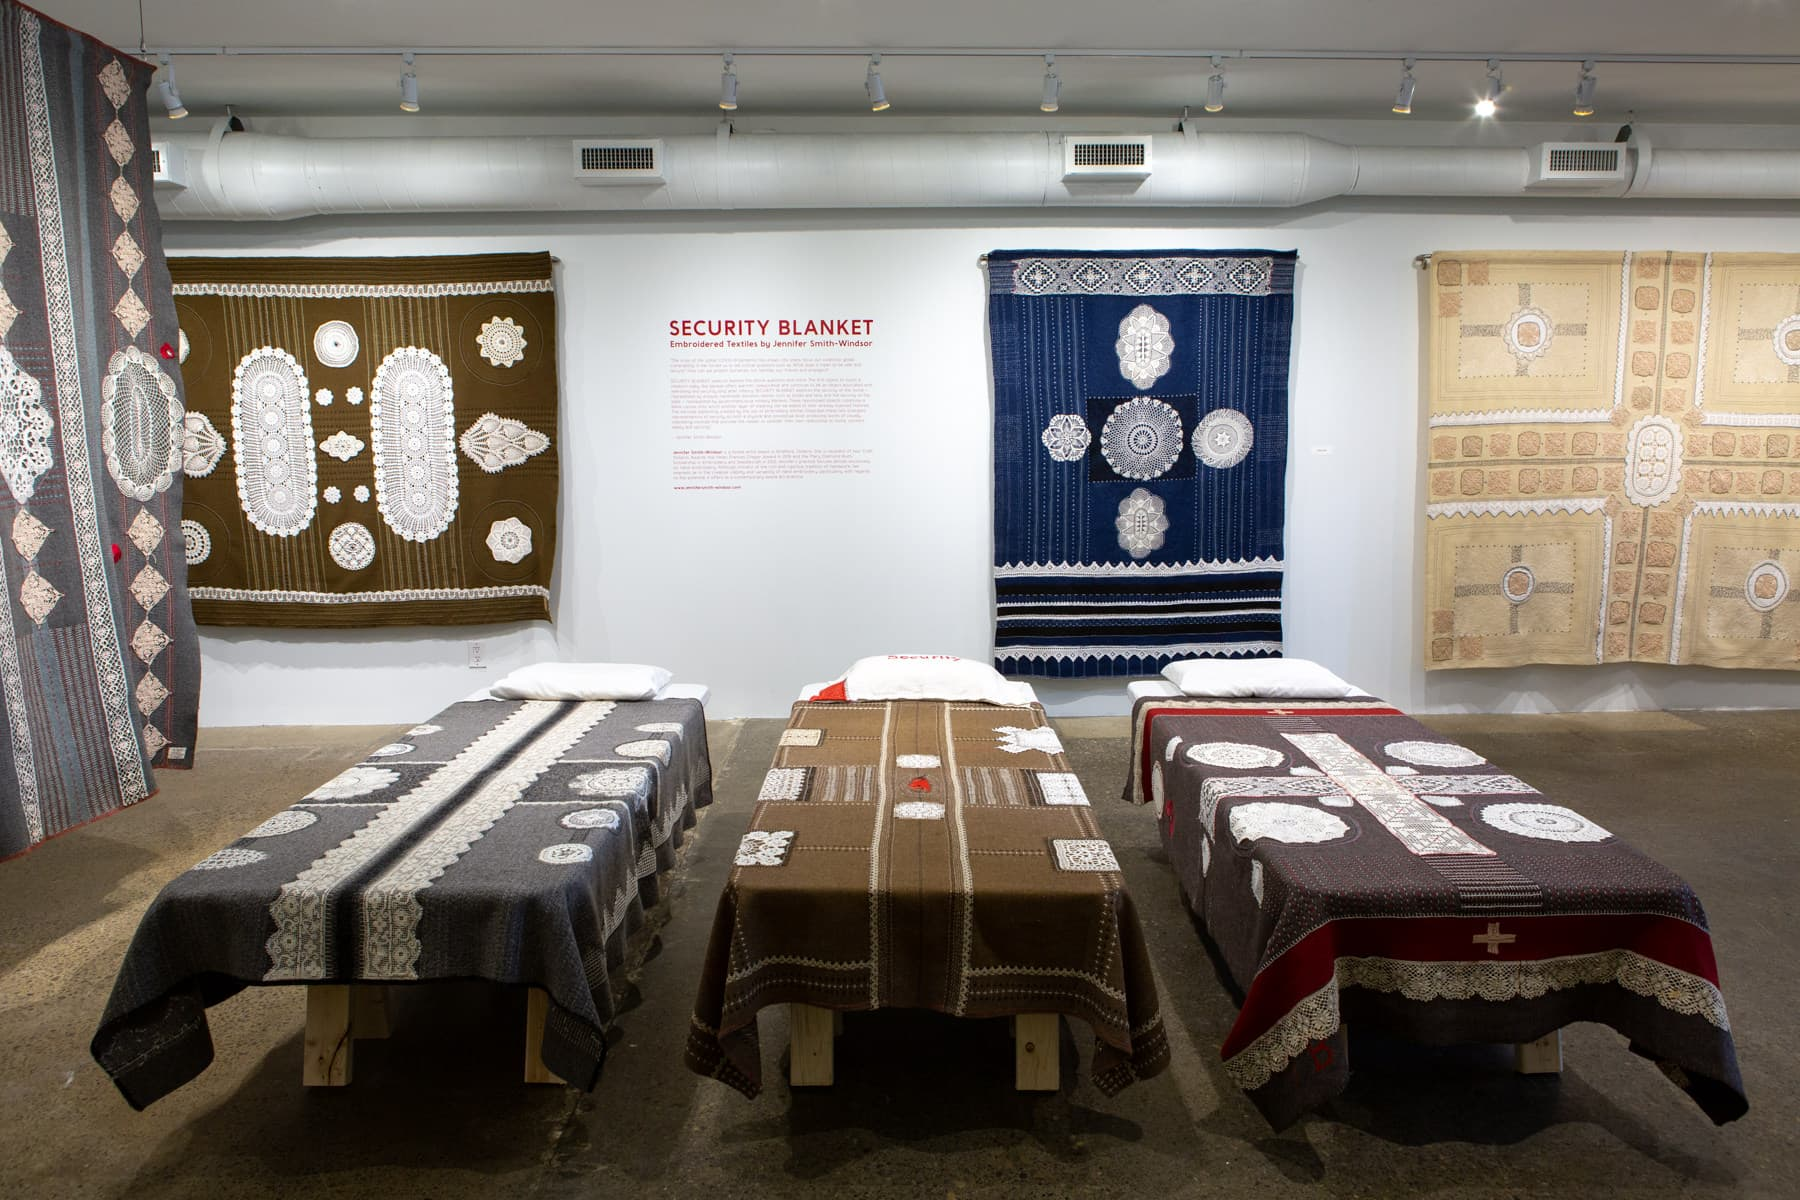 Image description: Embroidered wool blankets made up like beds and hung from gallery walls.